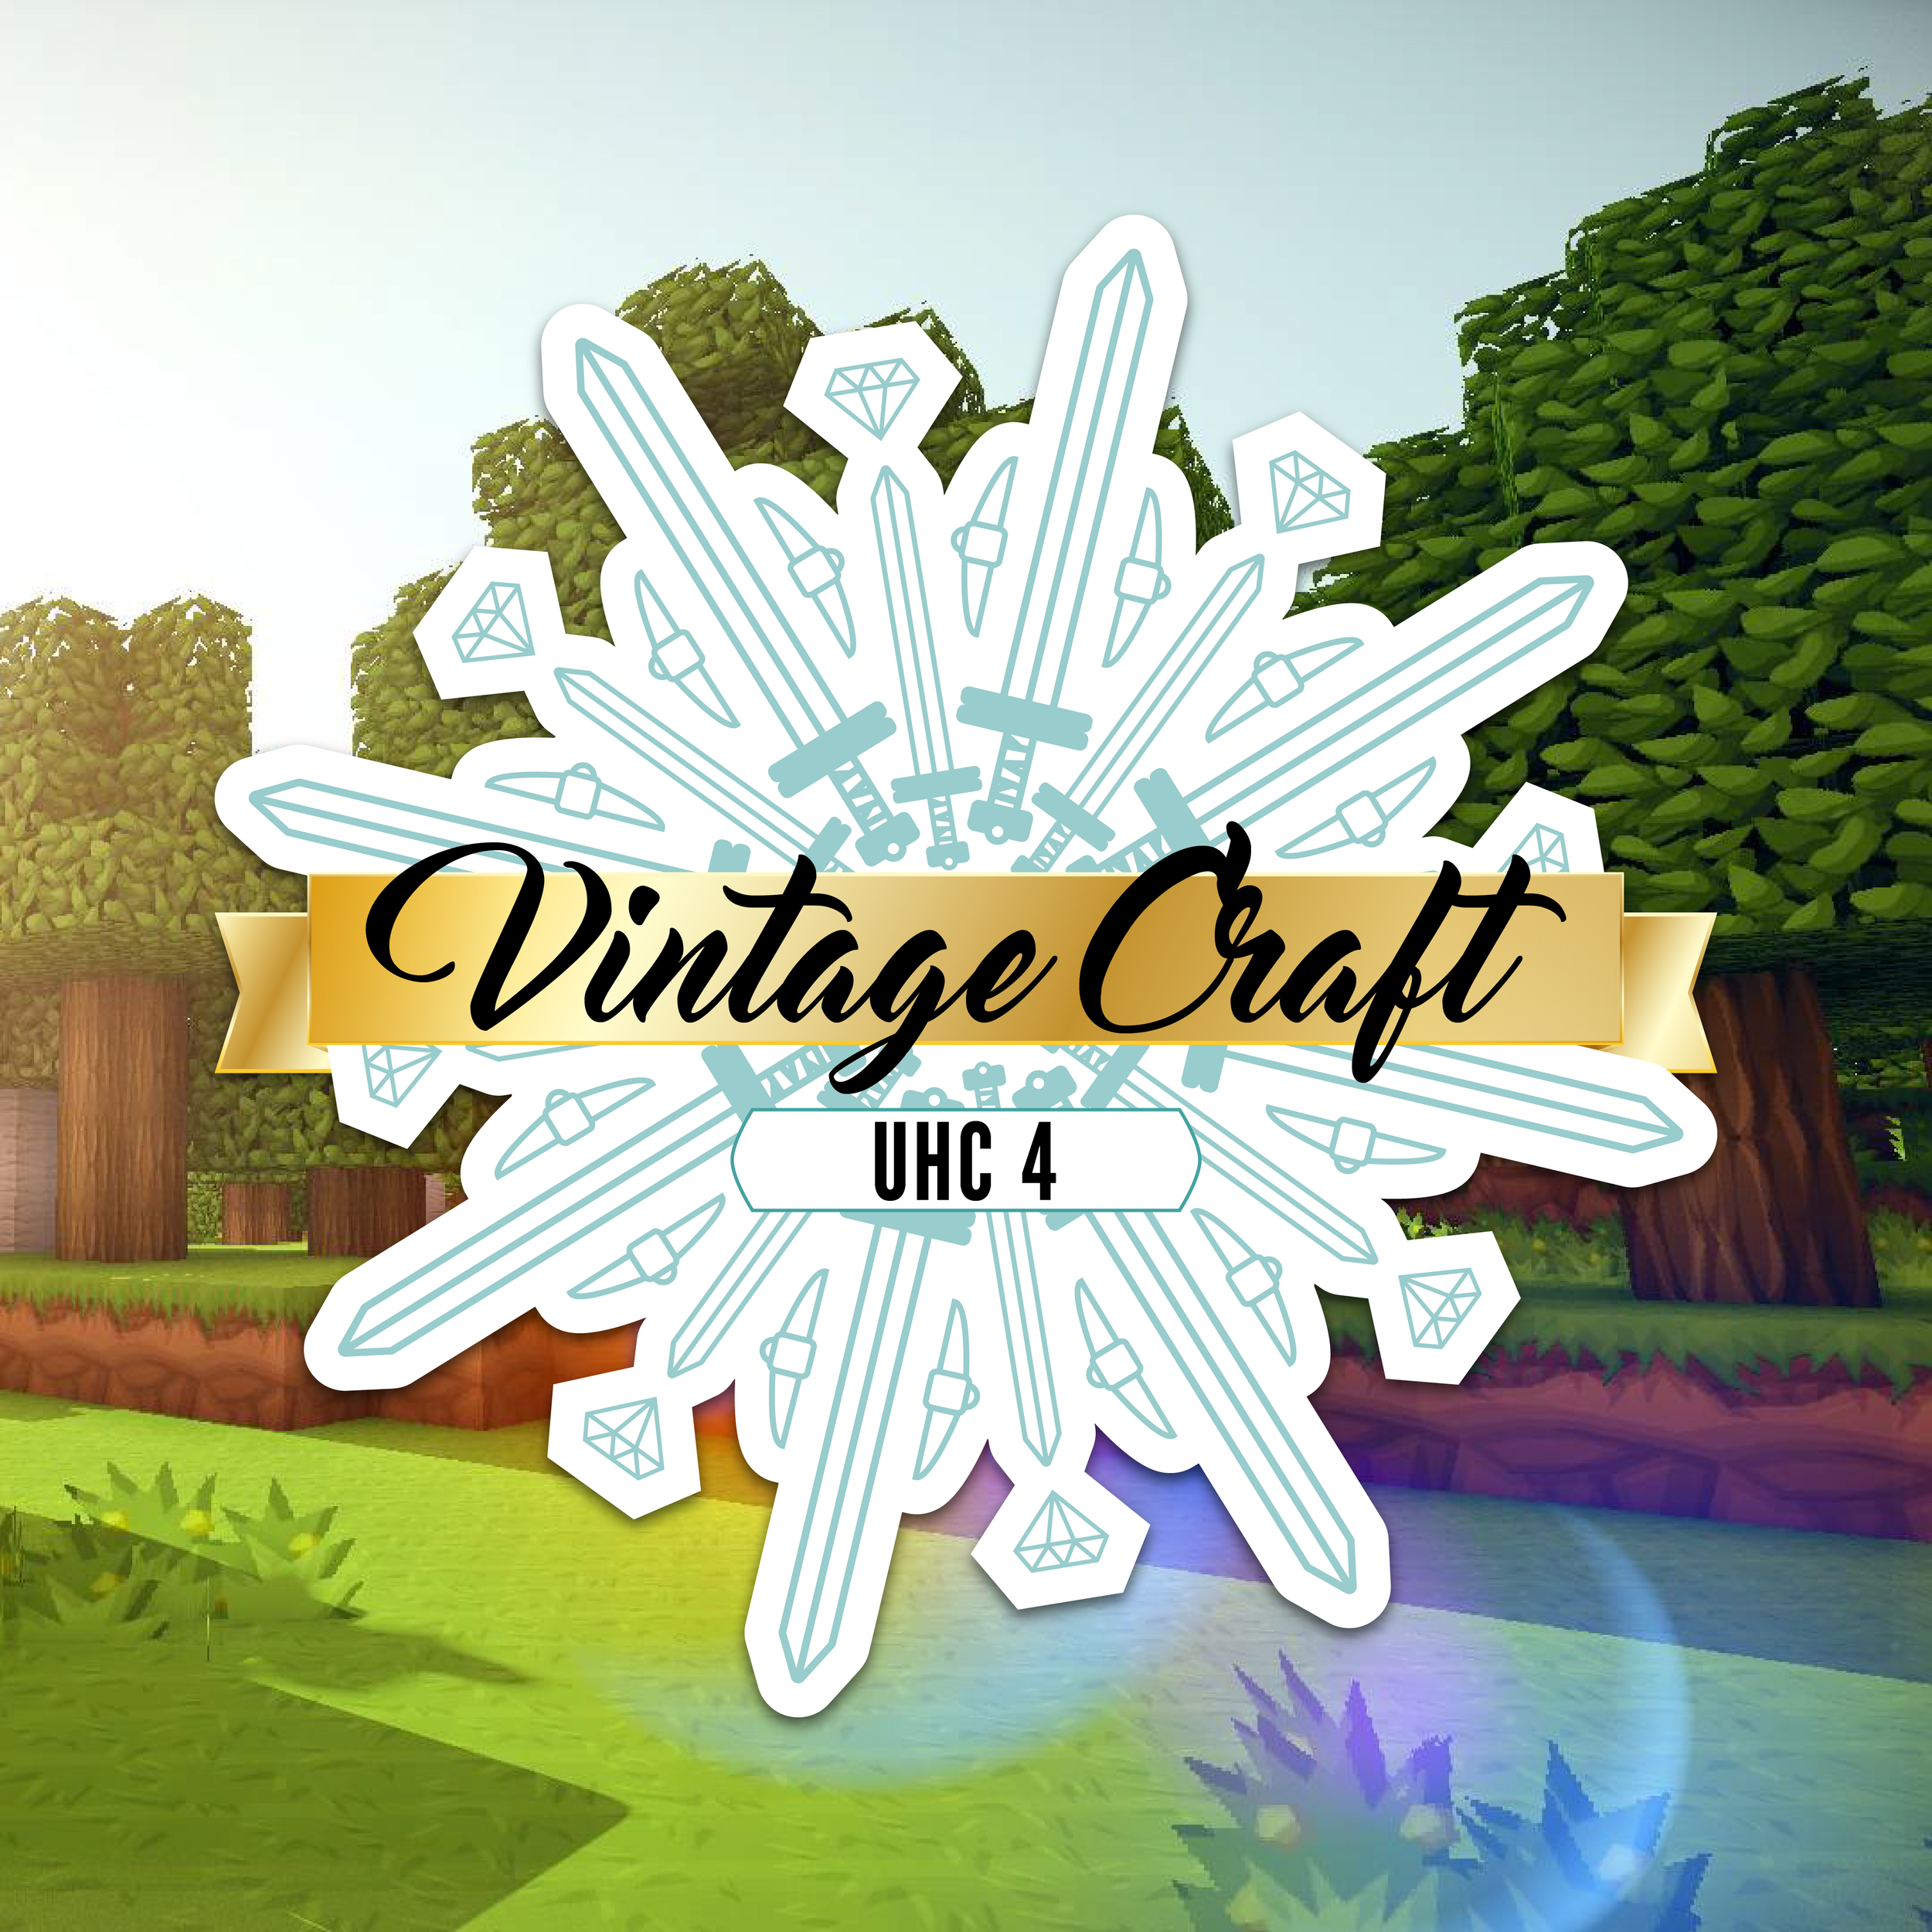 UHC-site-02.png